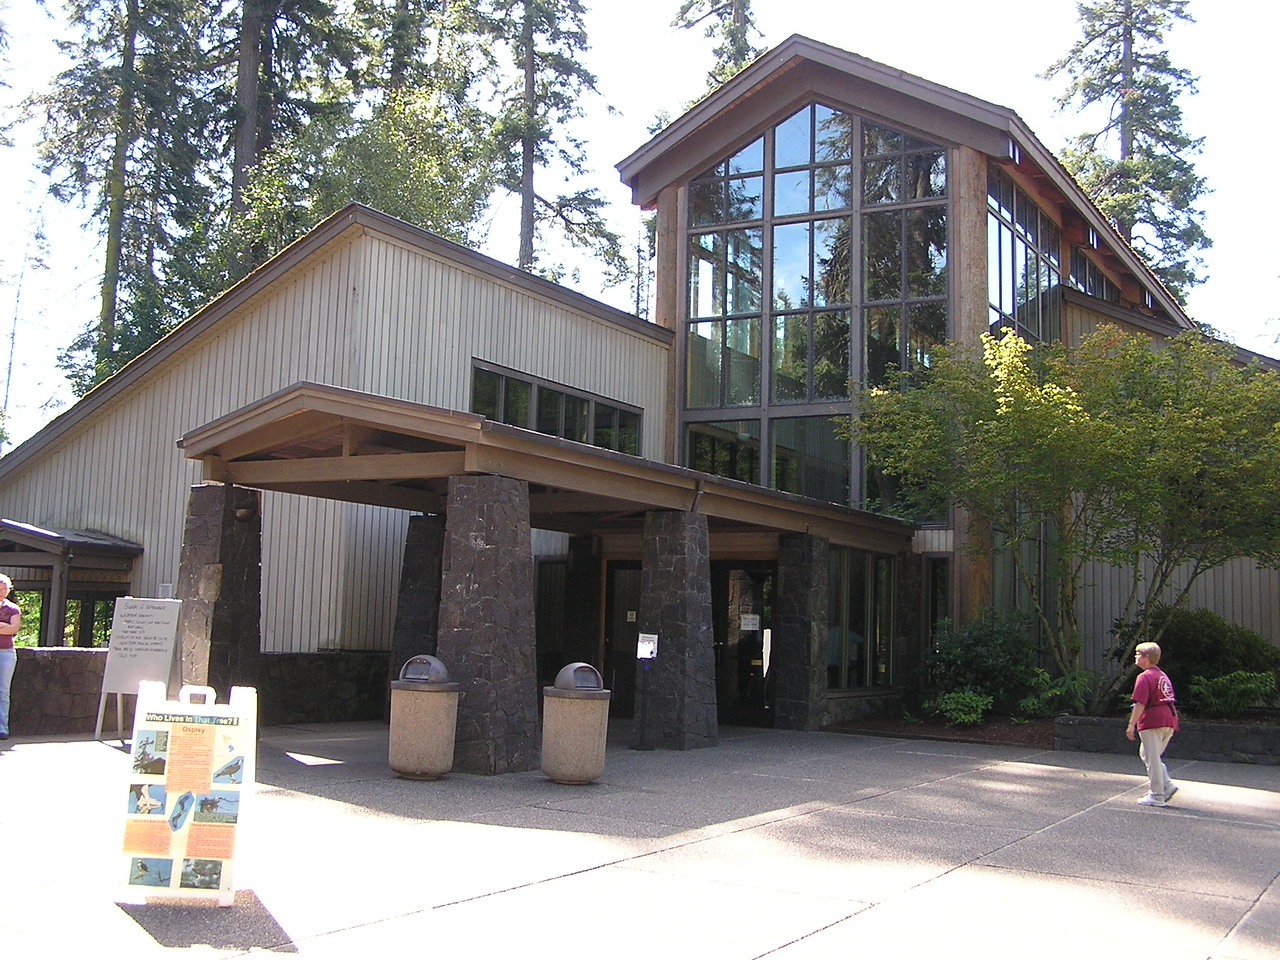 Mt St Helens Visitor Center at Seaquest State Park.